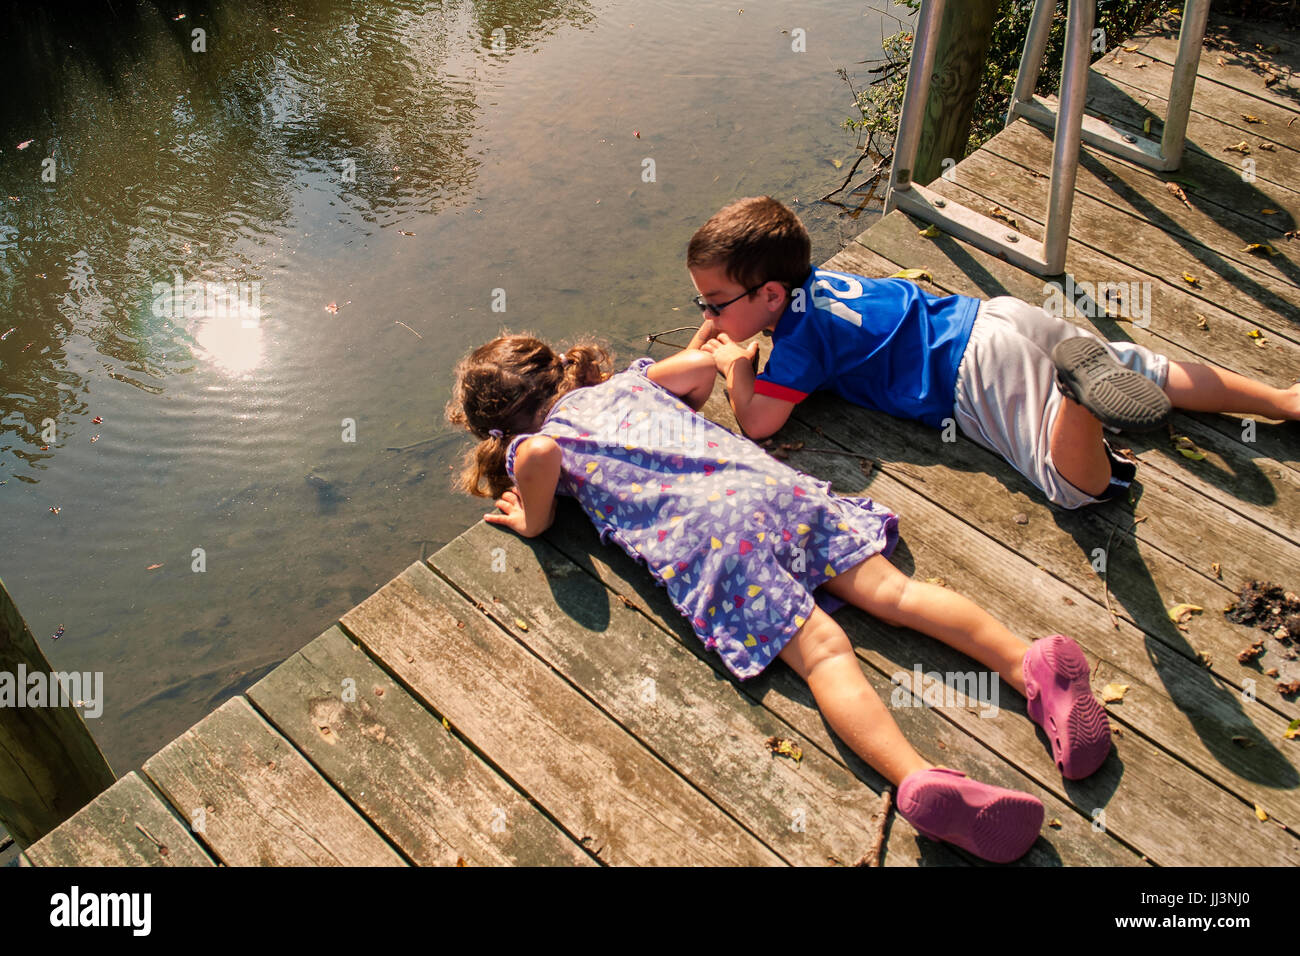 6-7 year old girl and boy looking over edge of dock - looking at fish. summer scenic - Stock Image